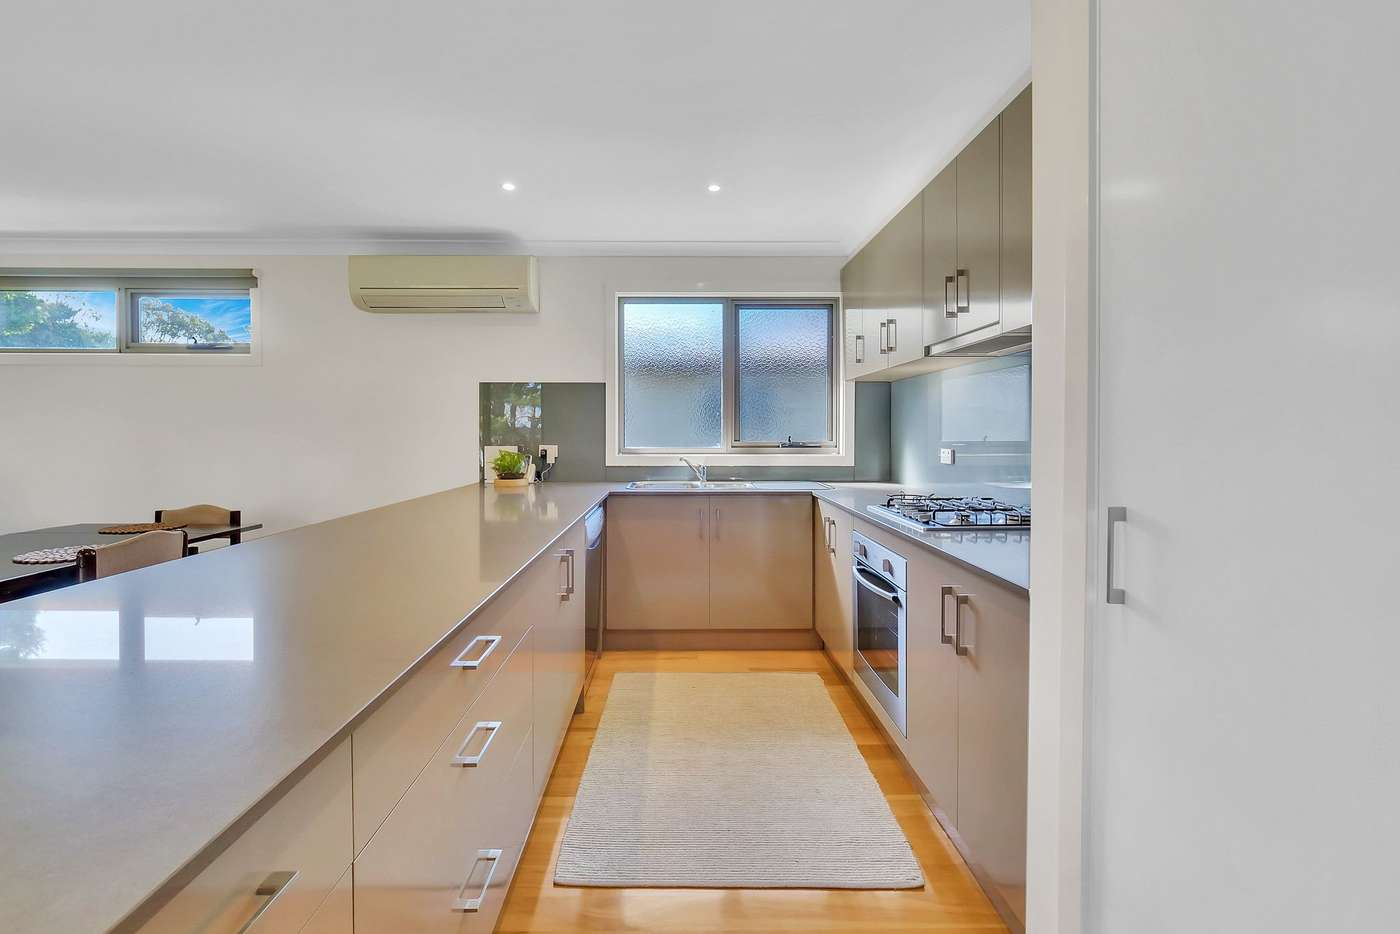 Sixth view of Homely house listing, 32 Dolphin Drive, Smiths Beach VIC 3922